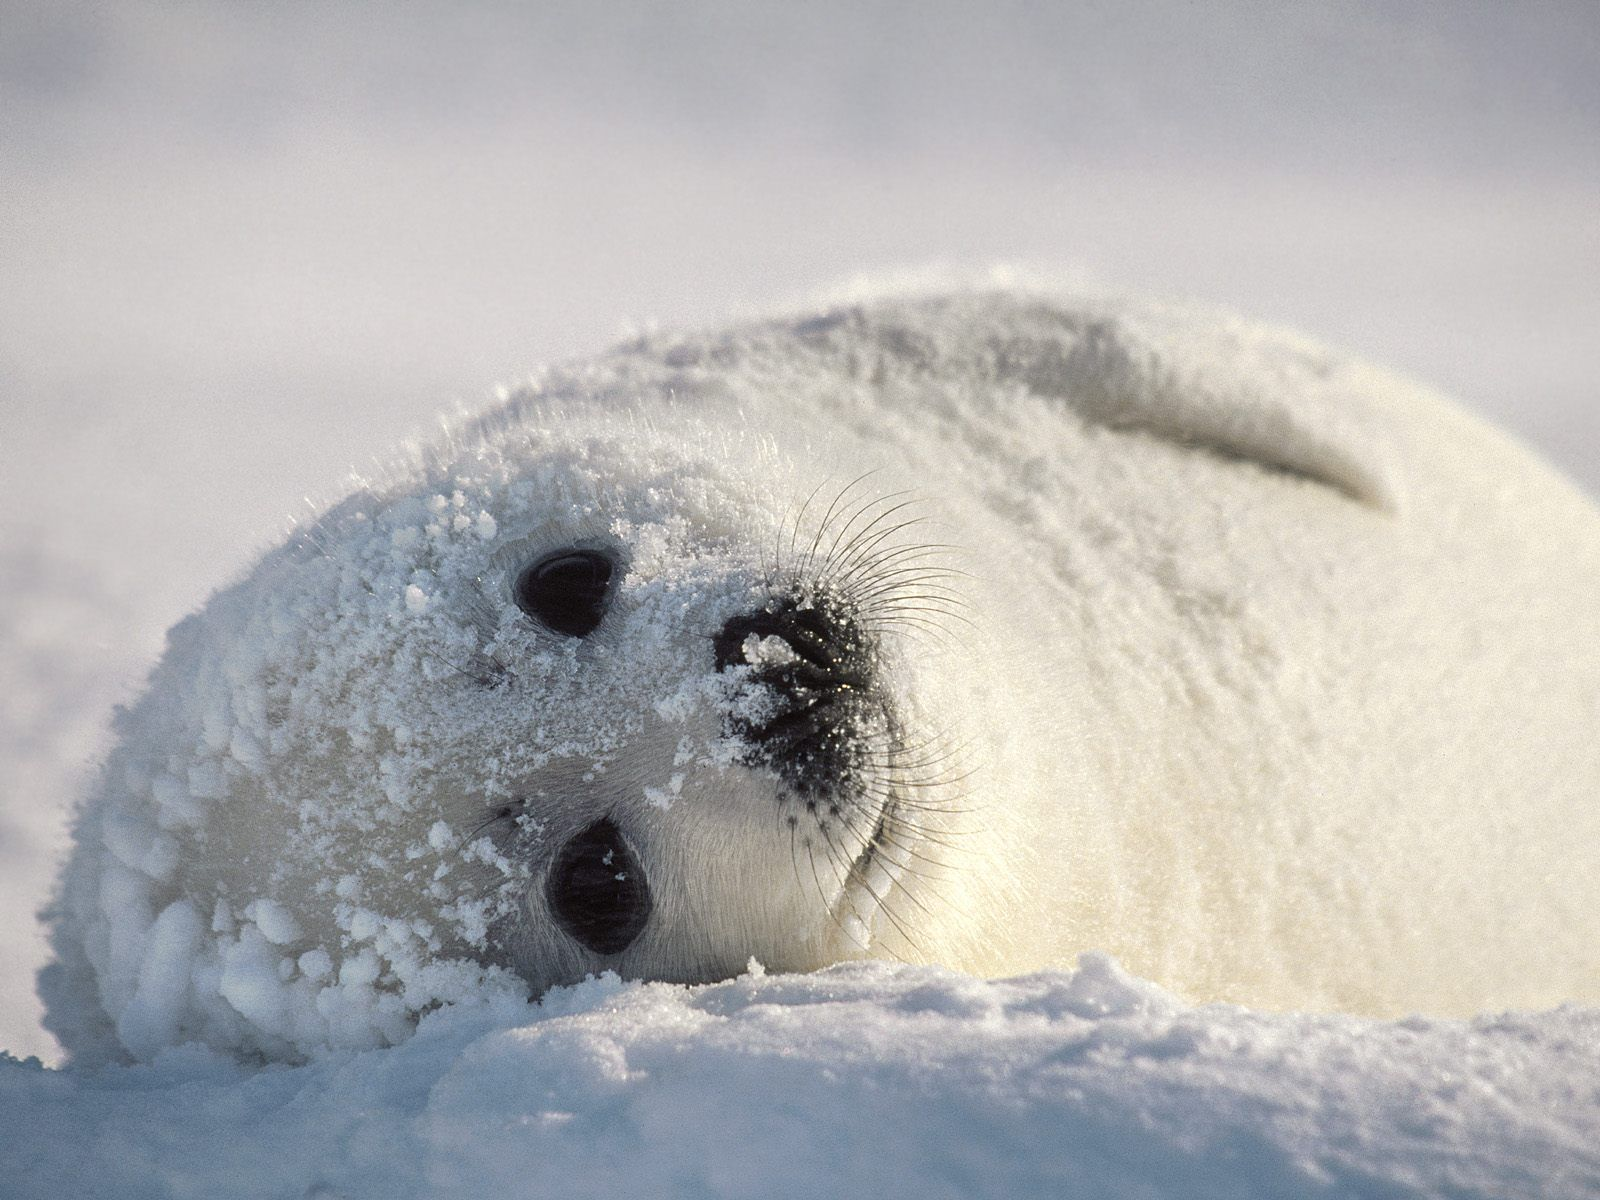 Harp seals | Harp Seal | Cute Animal Interesting Facts & Images | The Wildlife